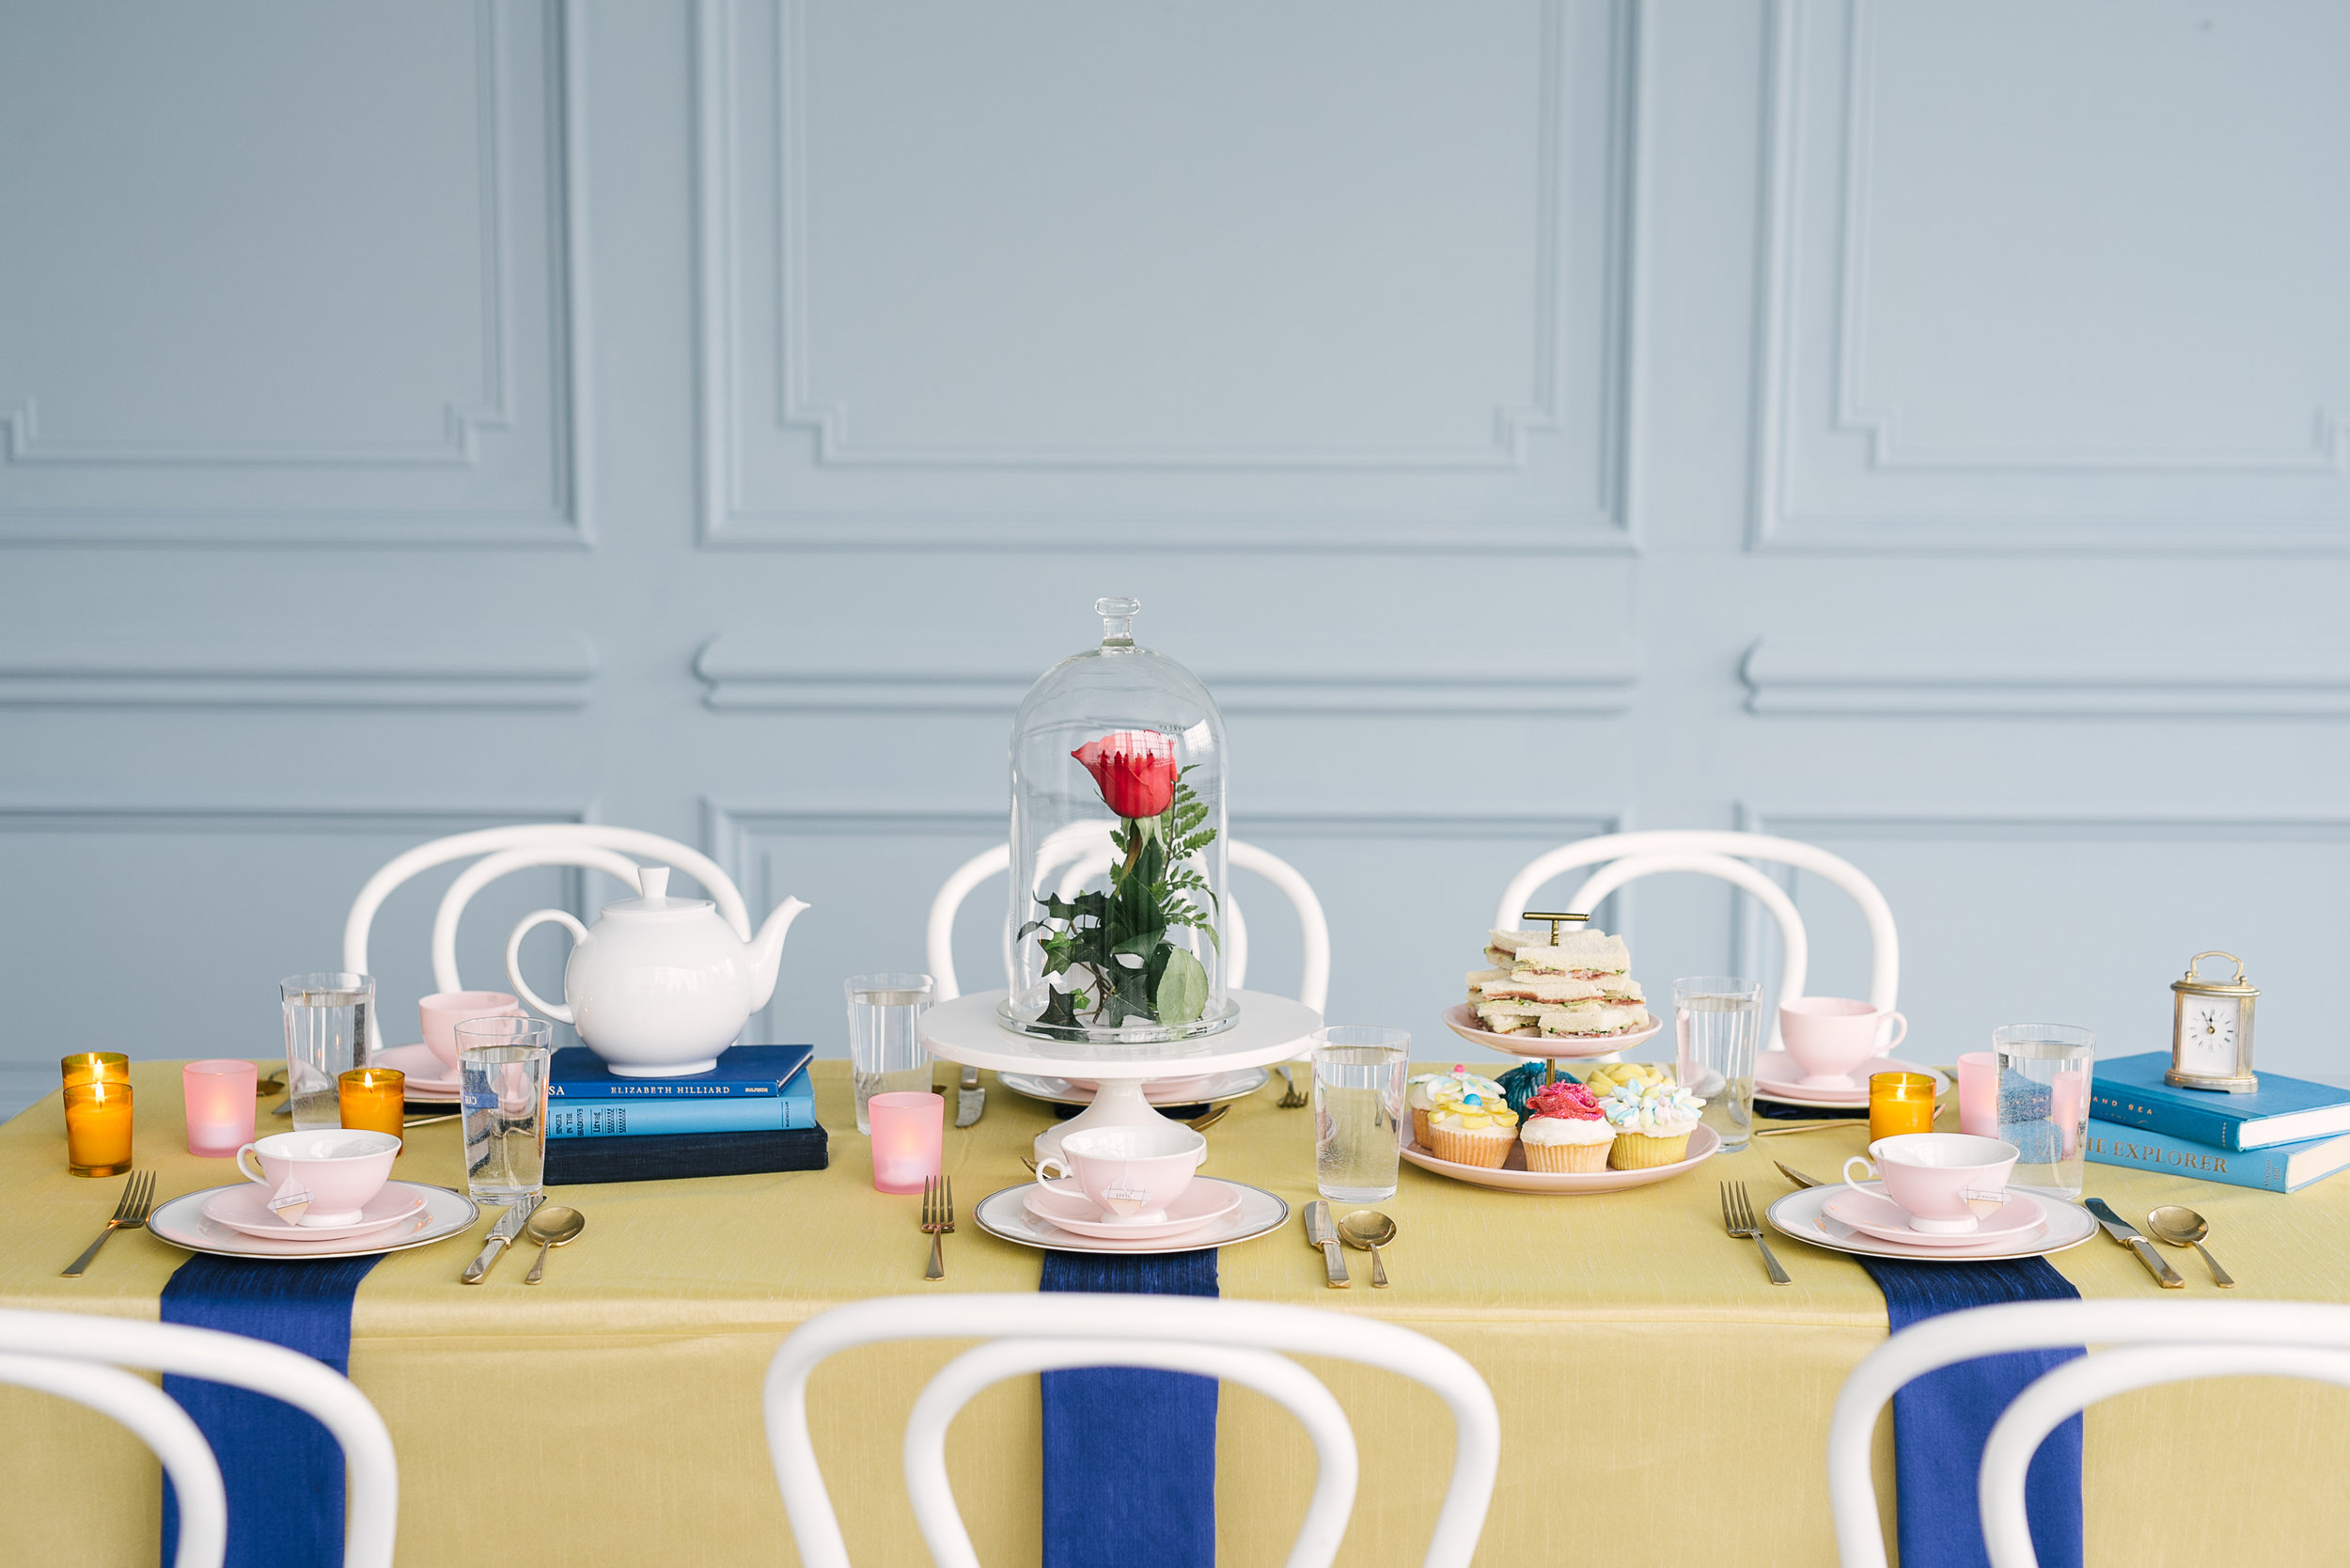 martha stewart - beauty and the beast-inspired baby shower